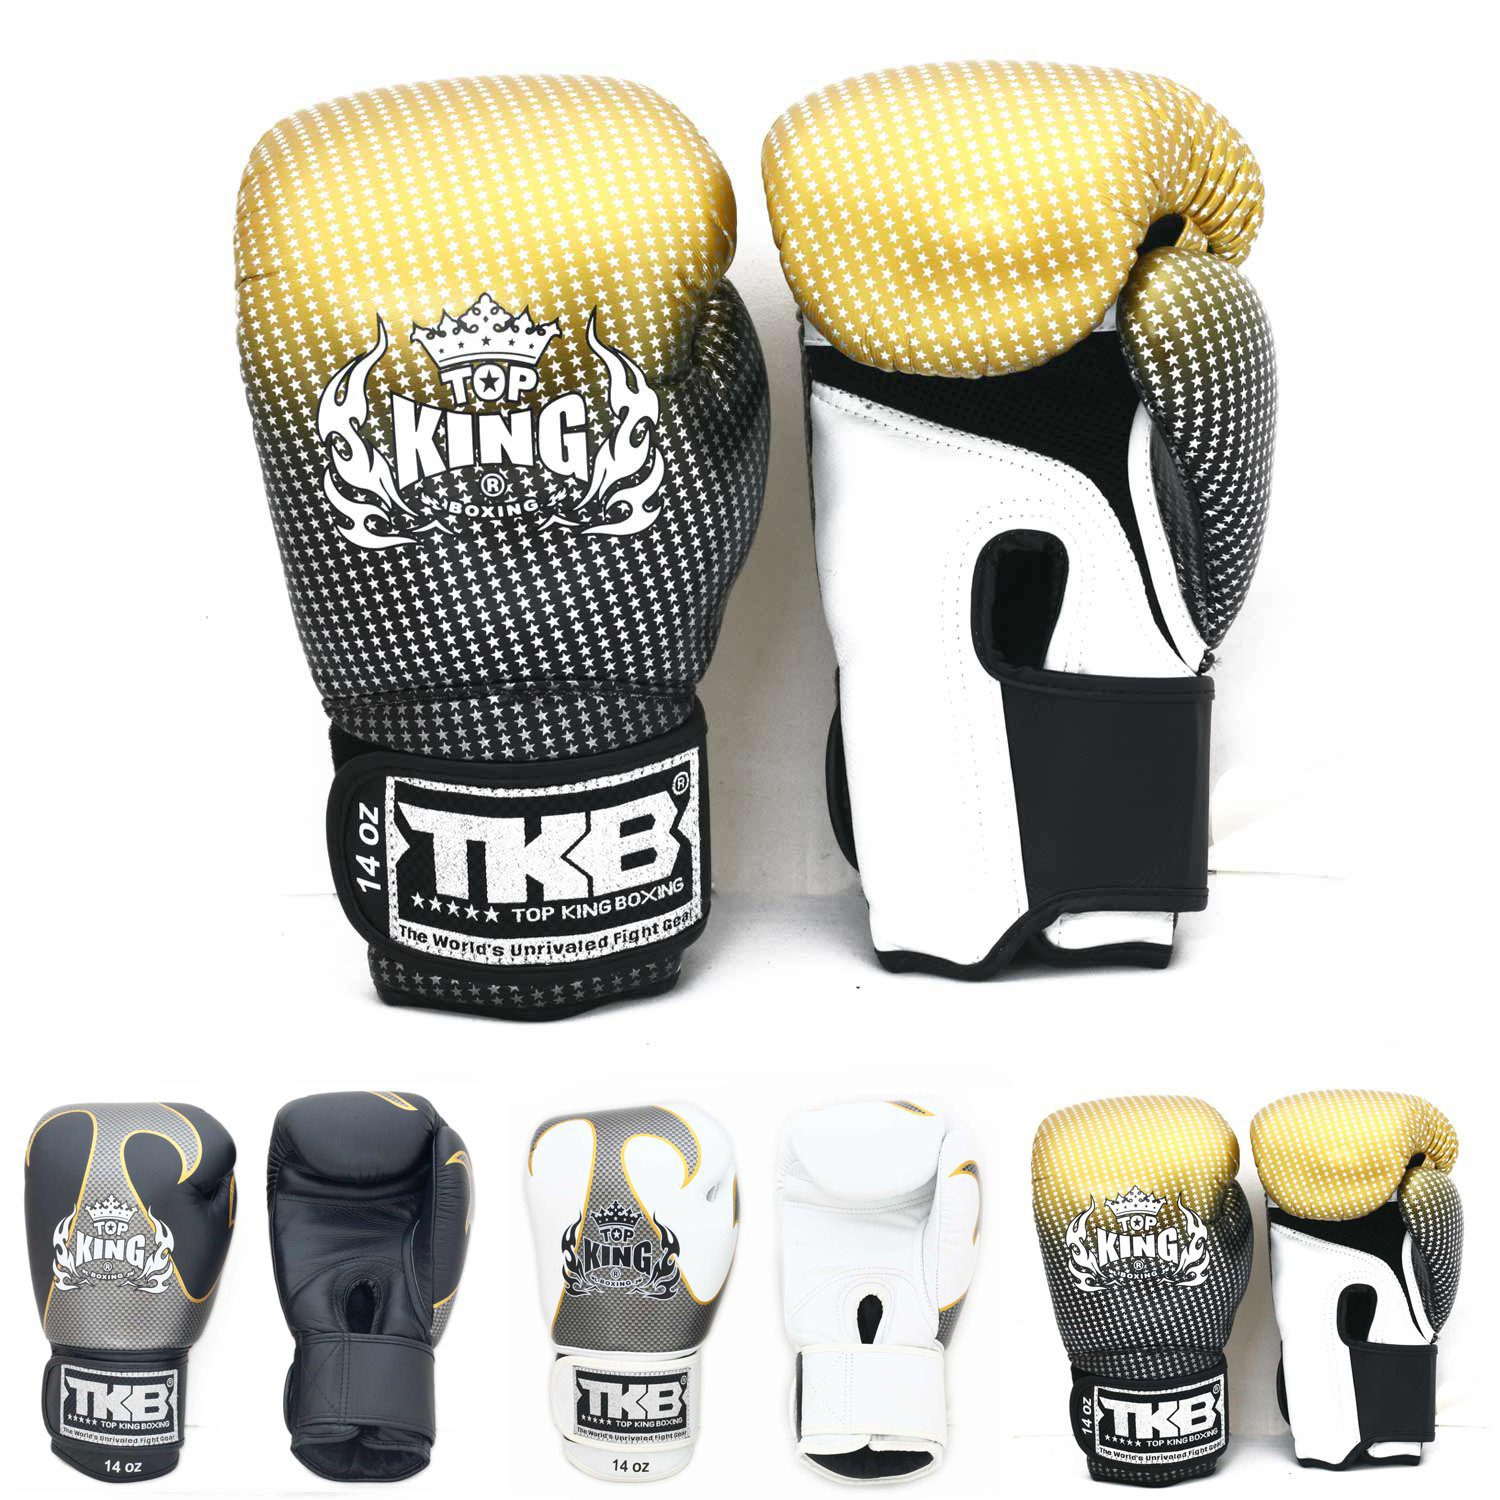 Top King Gloves